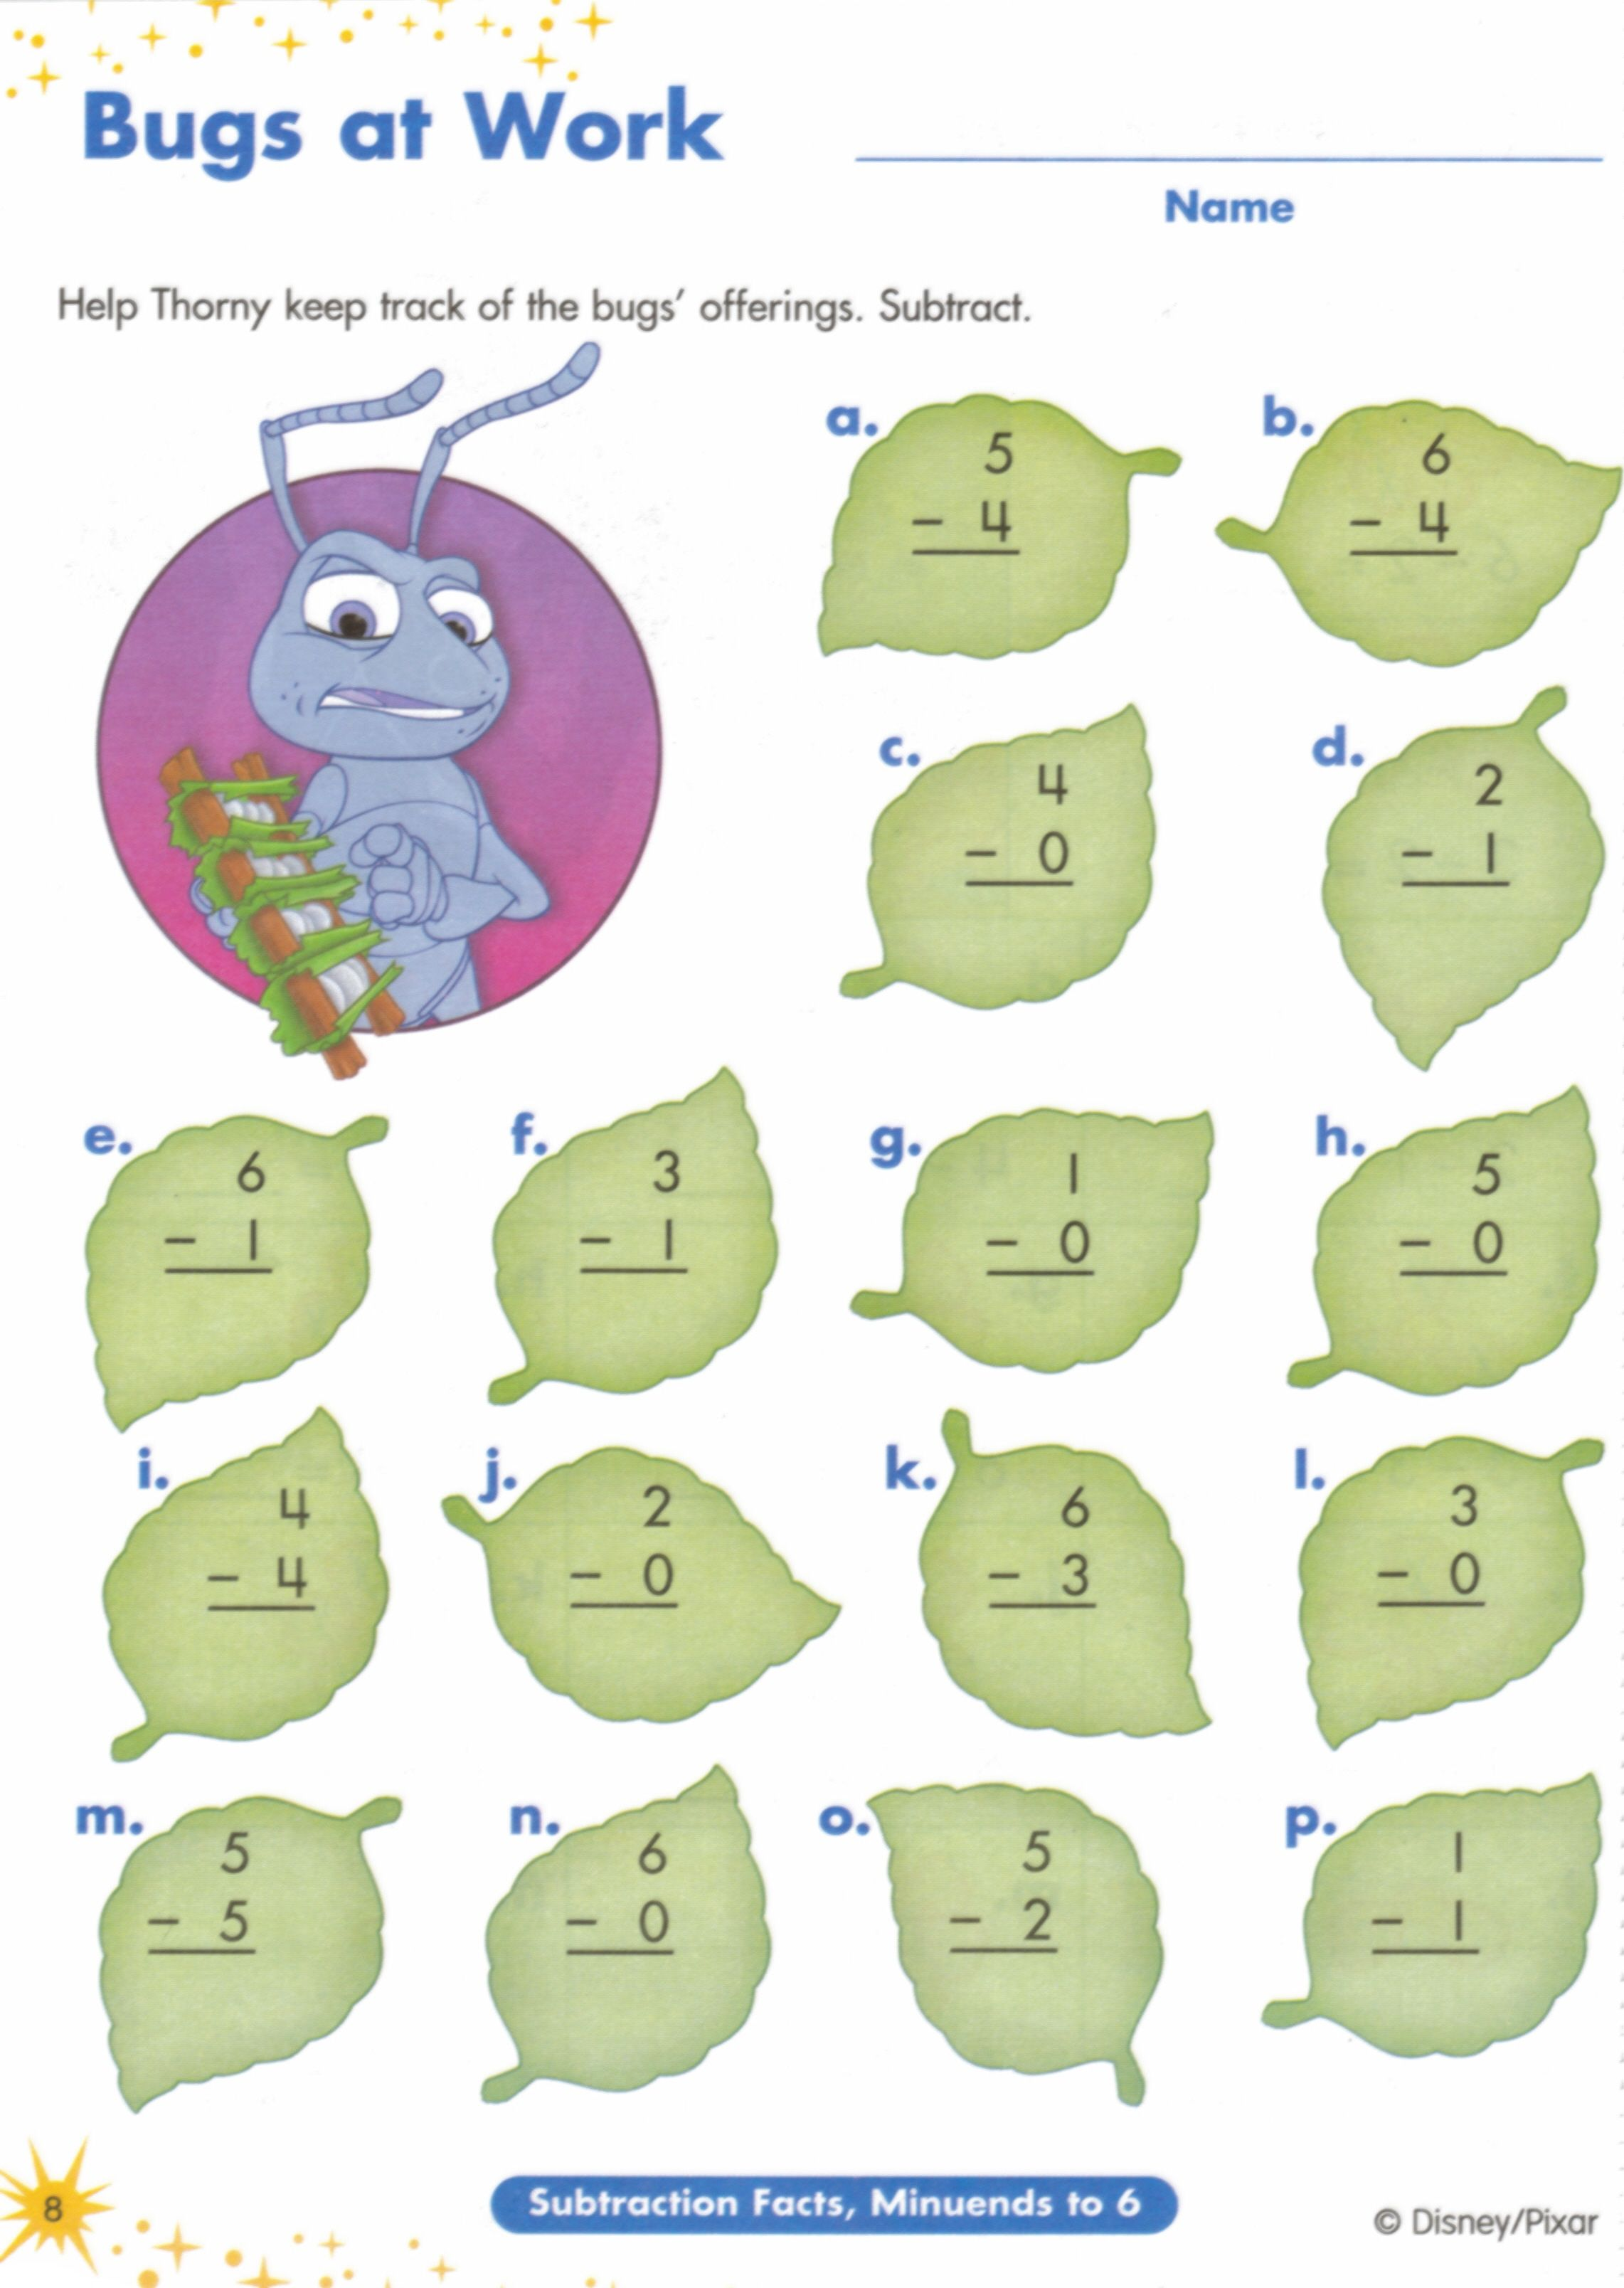 Weirdmailus  Sweet  Images About Worksheets On Pinterest  Fun Facts For Kids  With Licious  Images About Worksheets On Pinterest  Fun Facts For Kids Earth Day Worksheets And Jungles With Amazing Fun Worksheet Activities Also Greatest Common Factor Word Problems Worksheets In Addition Nd Grade Measurement Worksheet And Pronoun Worksheets First Grade As Well As Free Addition Worksheets With Regrouping Additionally Negative Fractions Worksheet From Pinterestcom With Weirdmailus  Licious  Images About Worksheets On Pinterest  Fun Facts For Kids  With Amazing  Images About Worksheets On Pinterest  Fun Facts For Kids Earth Day Worksheets And Jungles And Sweet Fun Worksheet Activities Also Greatest Common Factor Word Problems Worksheets In Addition Nd Grade Measurement Worksheet From Pinterestcom